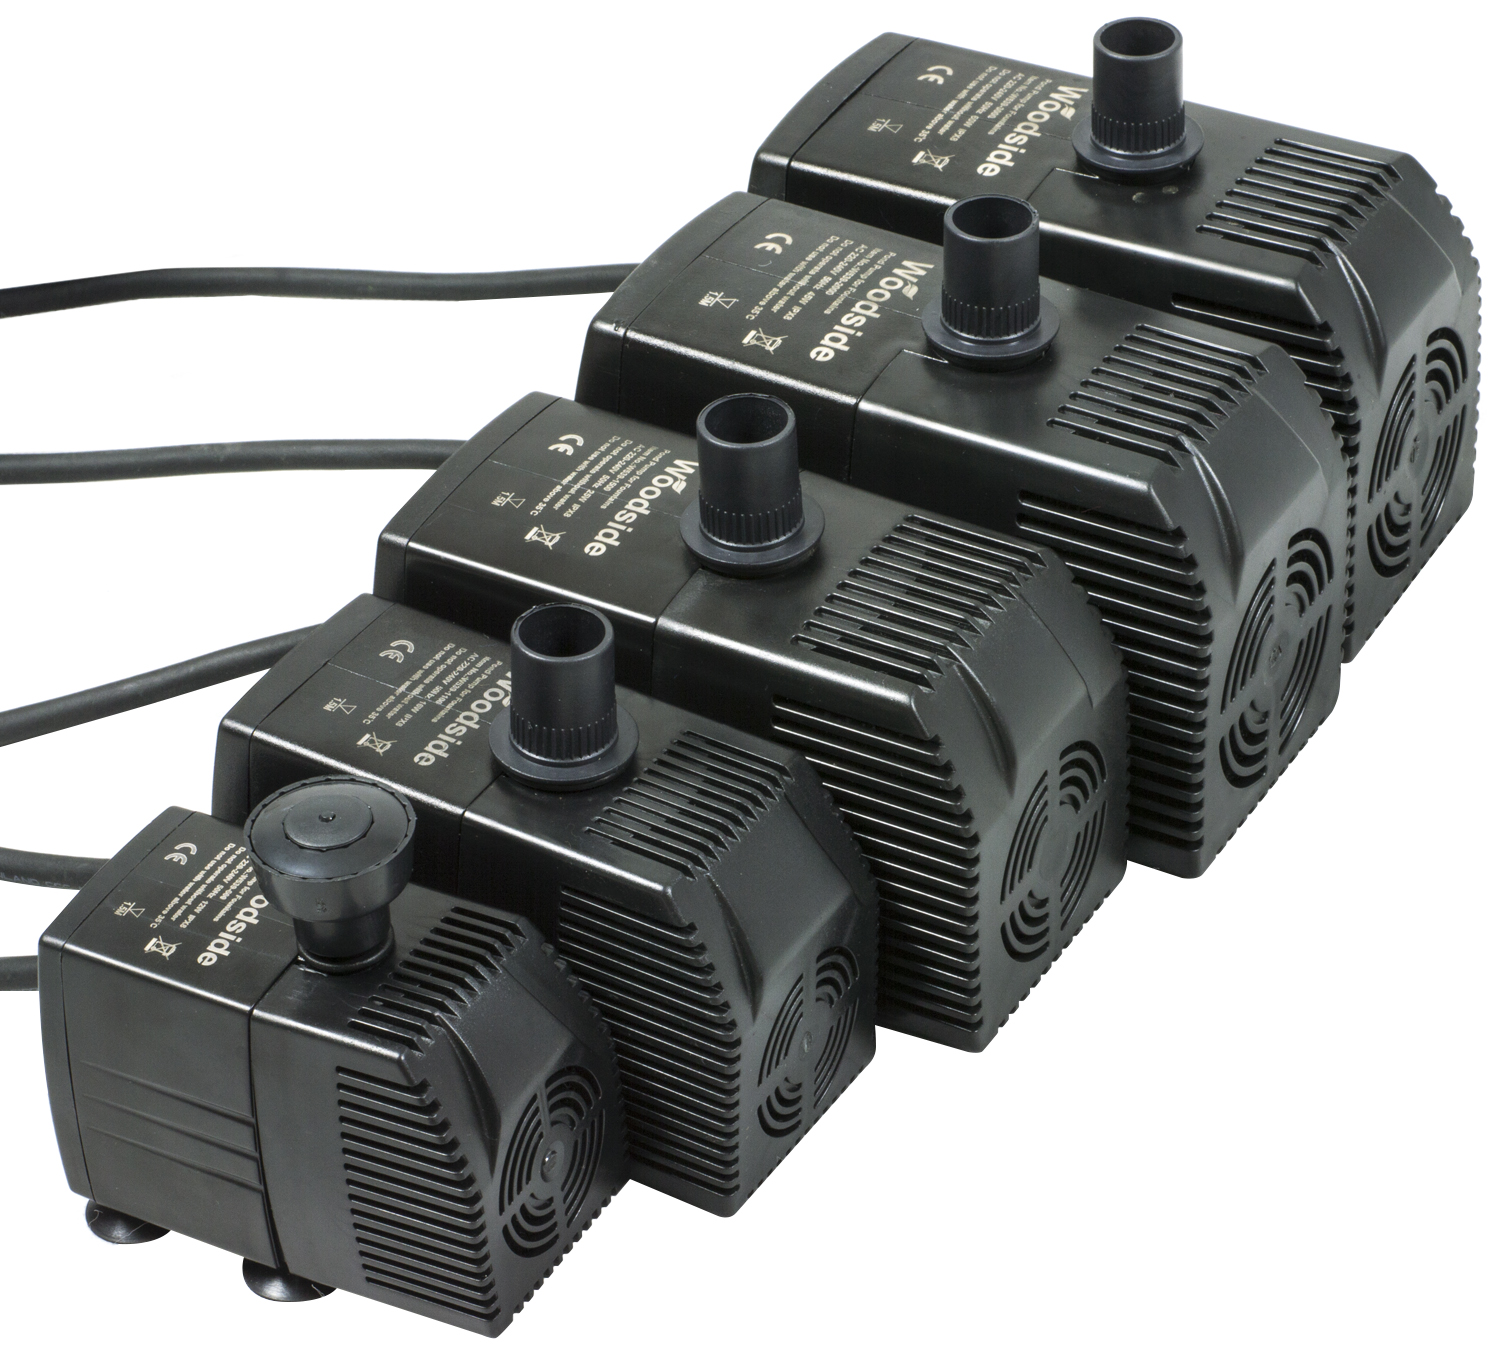 Woodside Pond Fountain Pump Pumps Outdoor Value